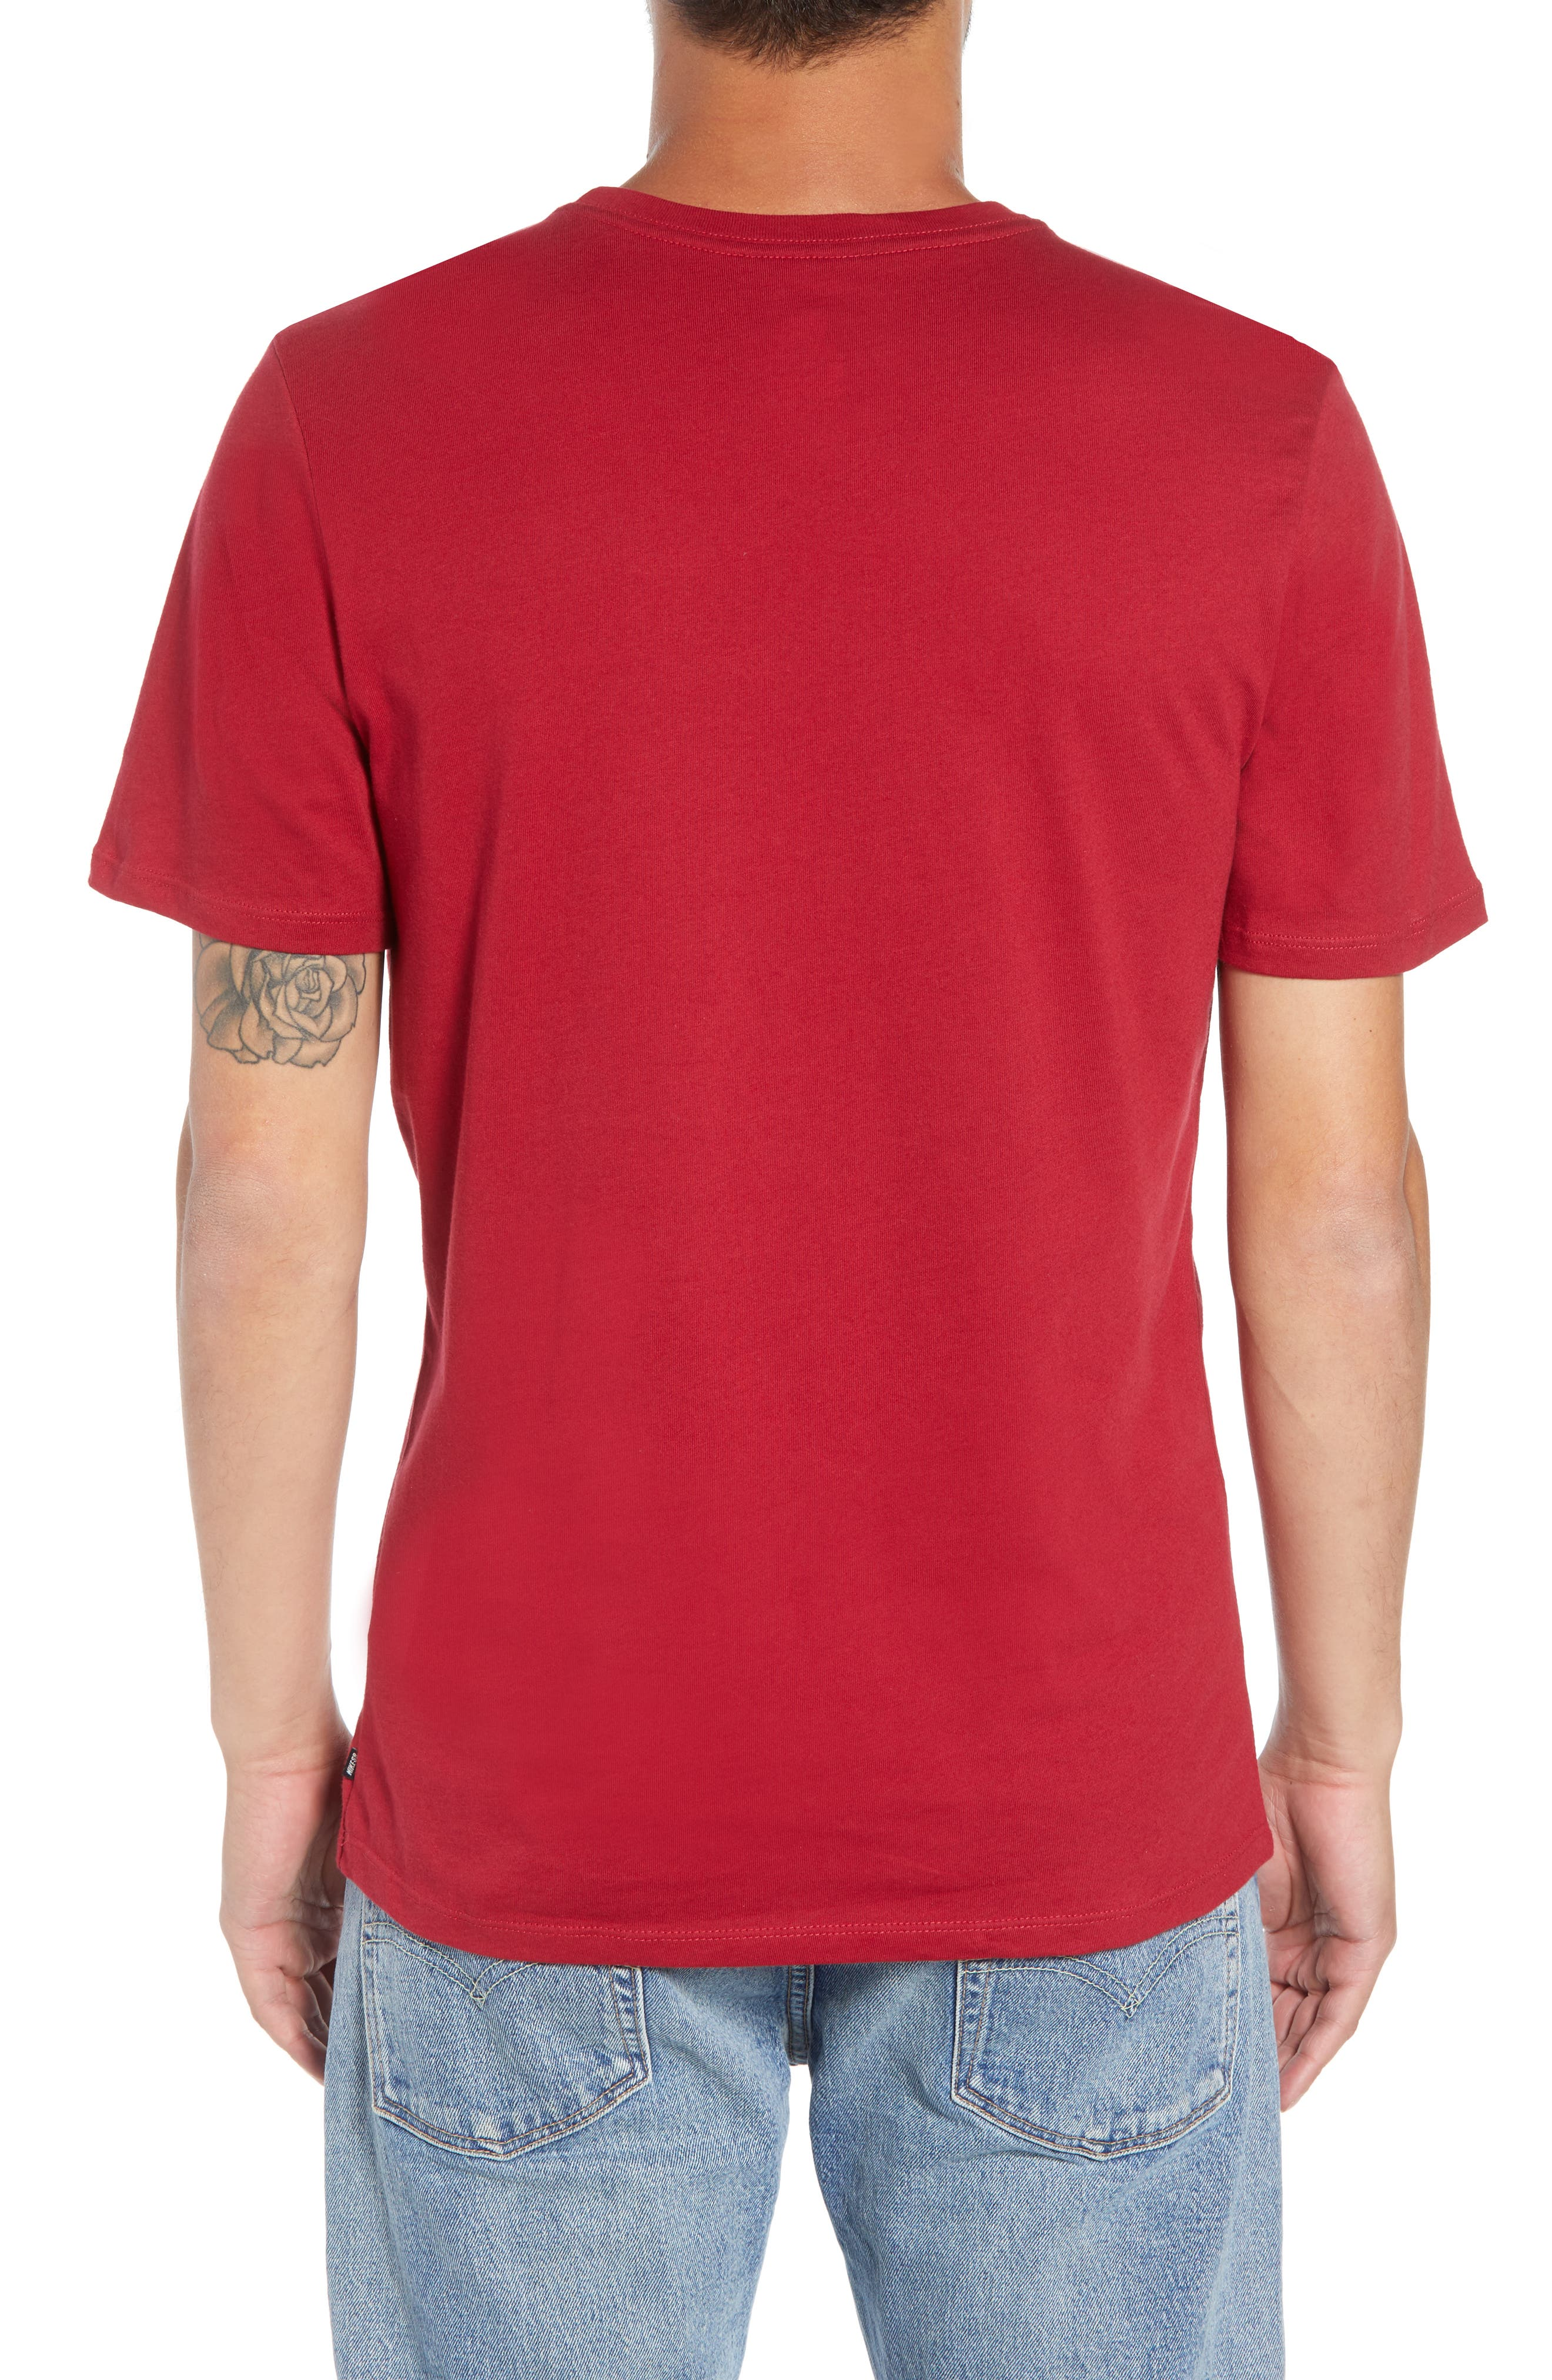 Year of the Dog T-Shirt,                             Alternate thumbnail 2, color,                             RED CRUSH